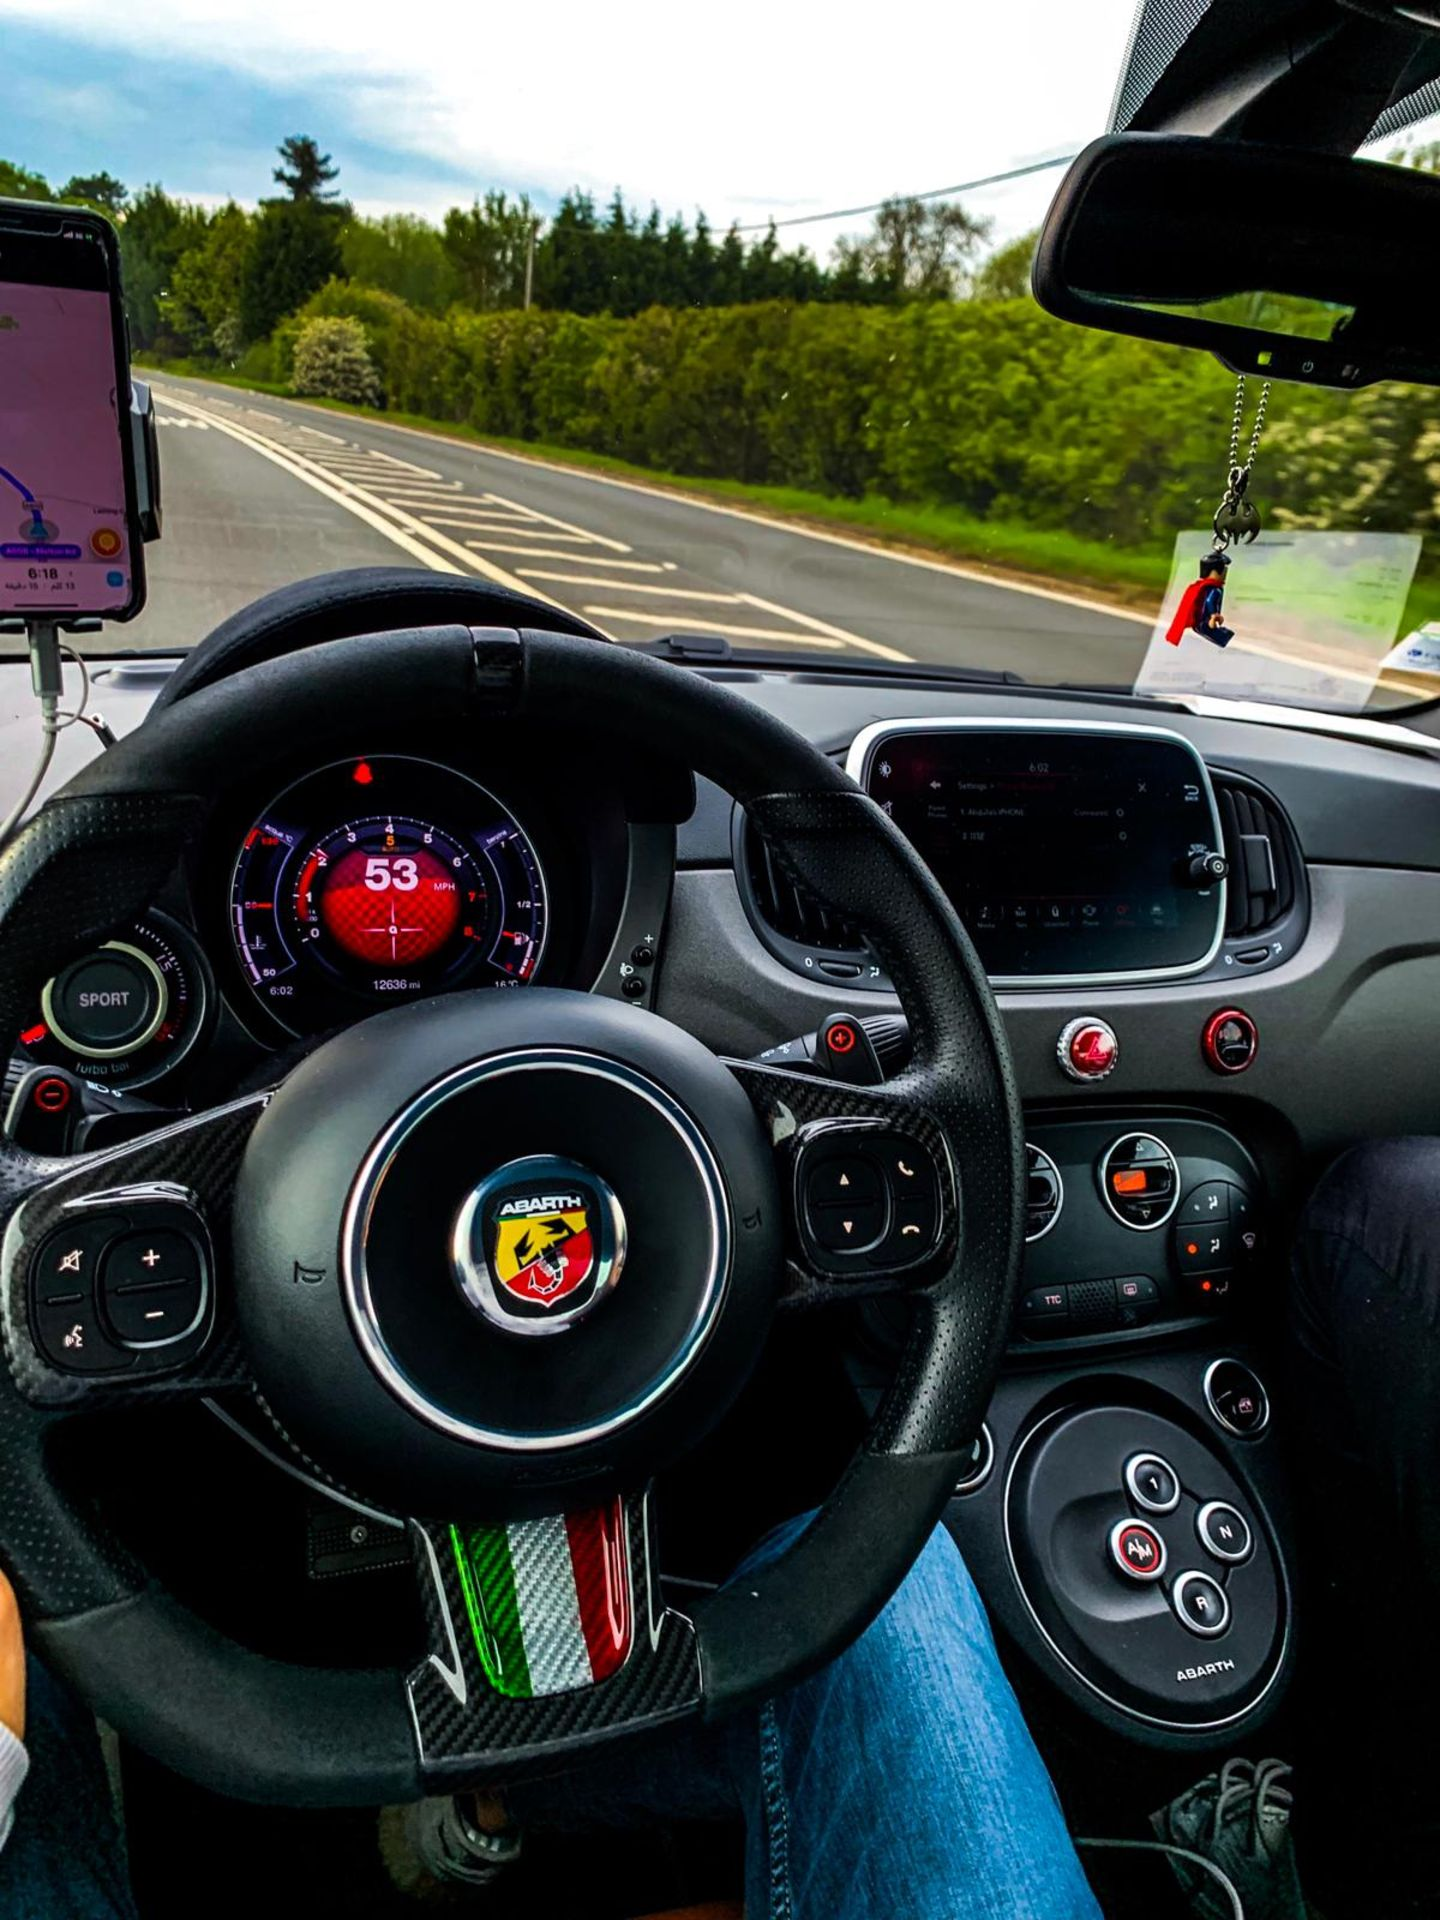 ABARTH 595 COMP 2016, 10,000 MILES NO ACCIDENTS, CUSTOM EXHAUST, WRAPPED DARK GREEN, FRENCH PLATES - Image 5 of 5